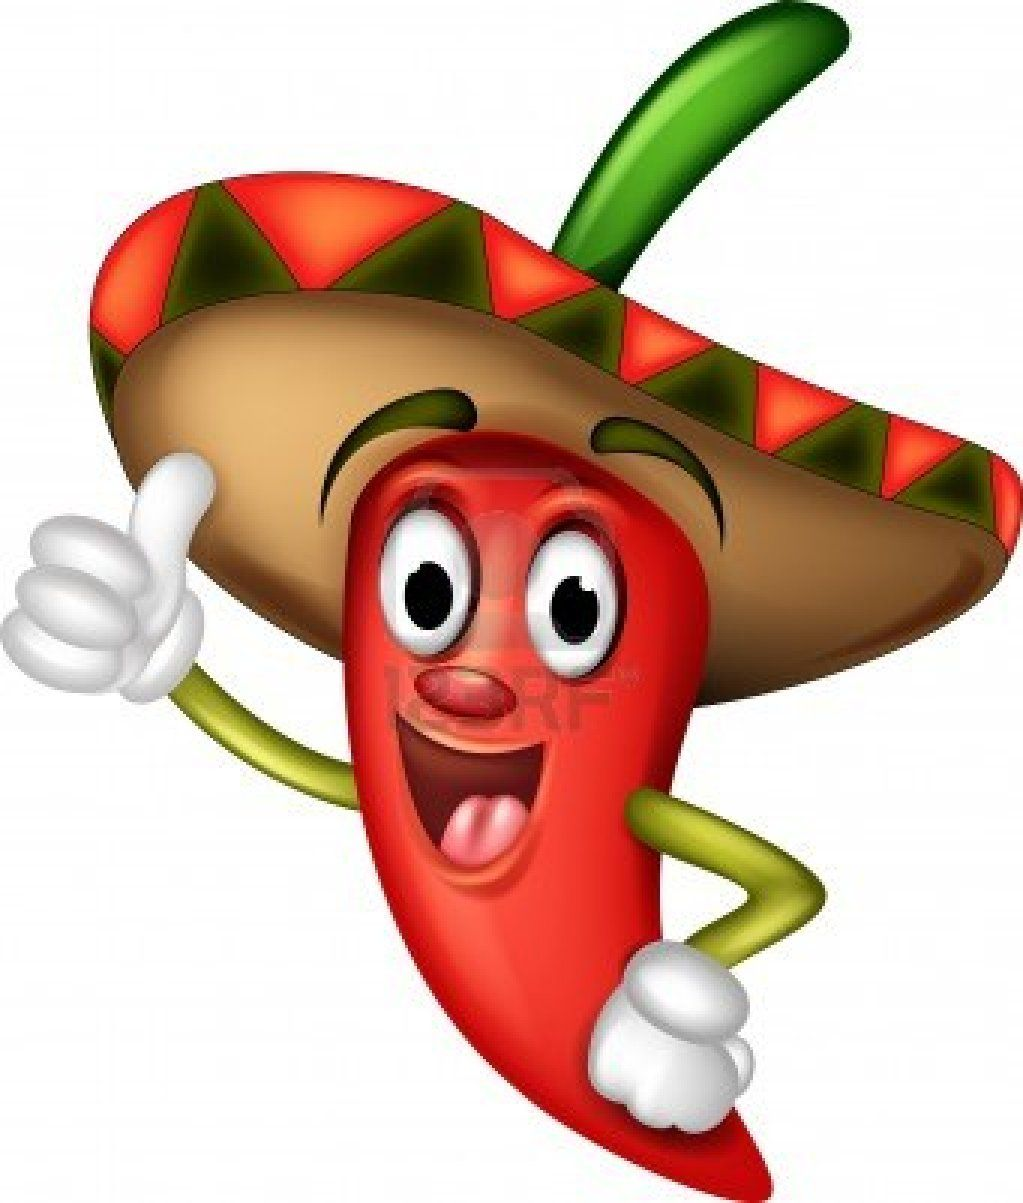 medium resolution of chili pepper cartoon thumbs up stock photo chile mexicano mexican party mexican night